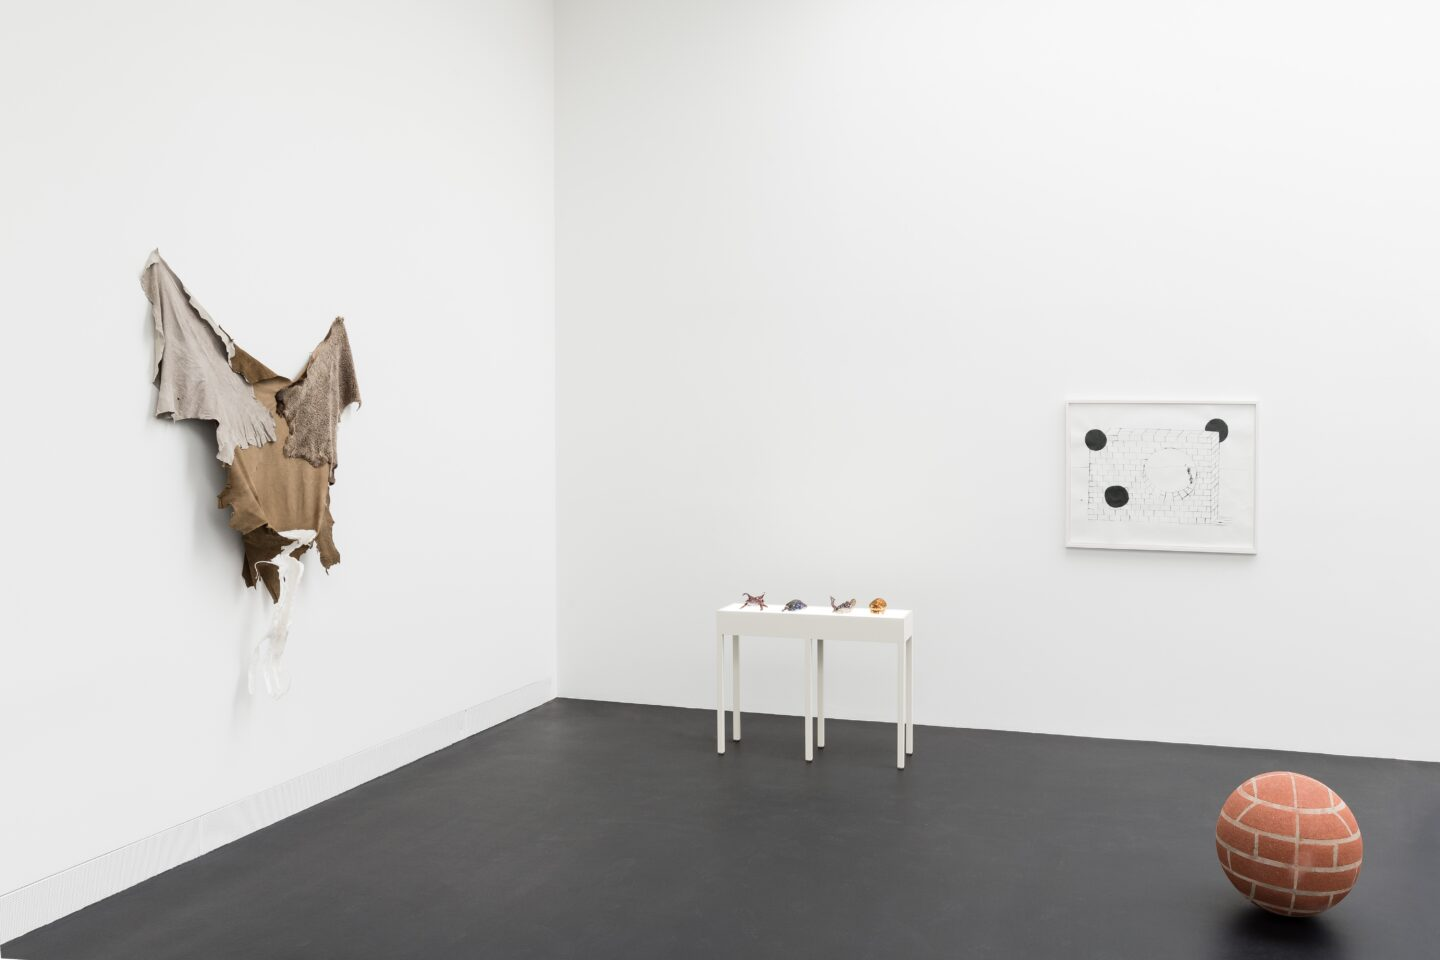 Exhibition View Groupshow «HOOKS & CLAWS» at Galerie Gregor Staiger, Zurich, 2020 / Photo: © Galerie Gregor Staiger / Courtesy: the artists and Galerie Gregor Staiger